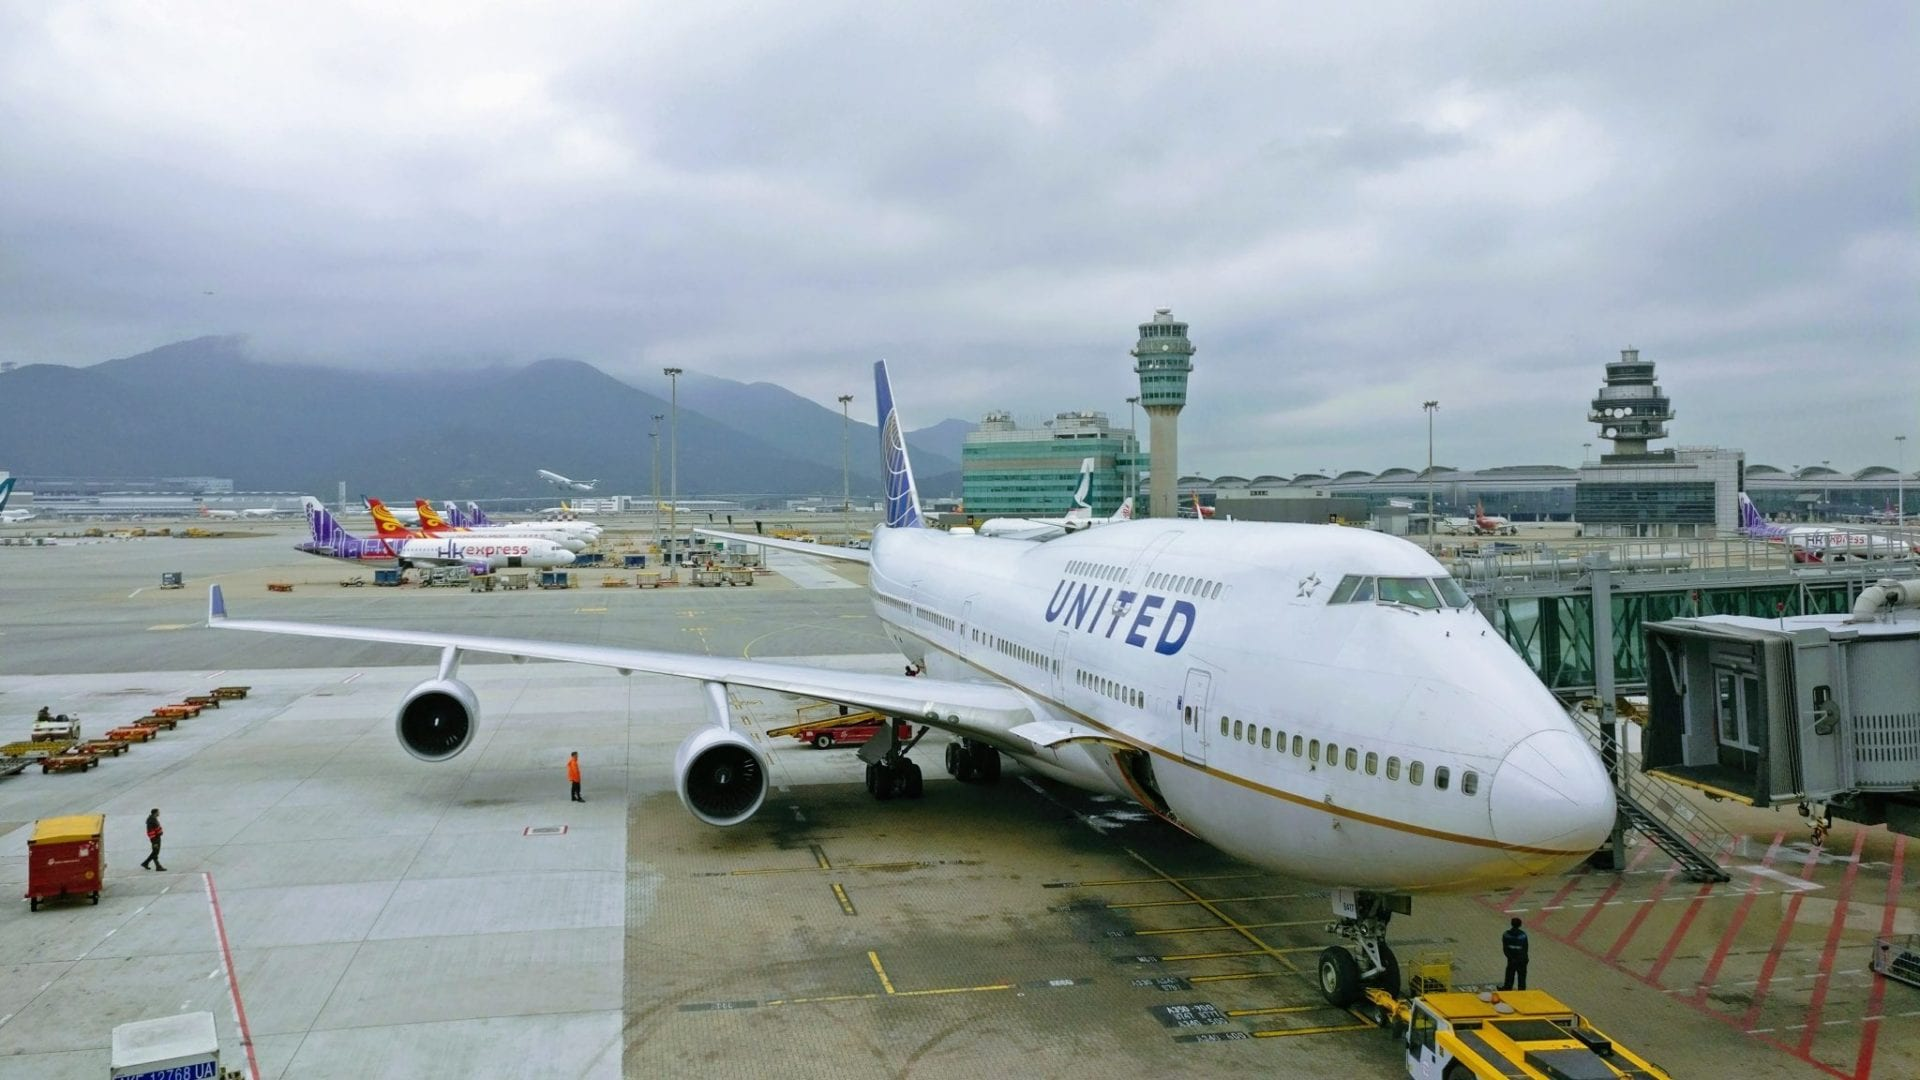 United Airlines Boeing 747 Hong Kong Airport